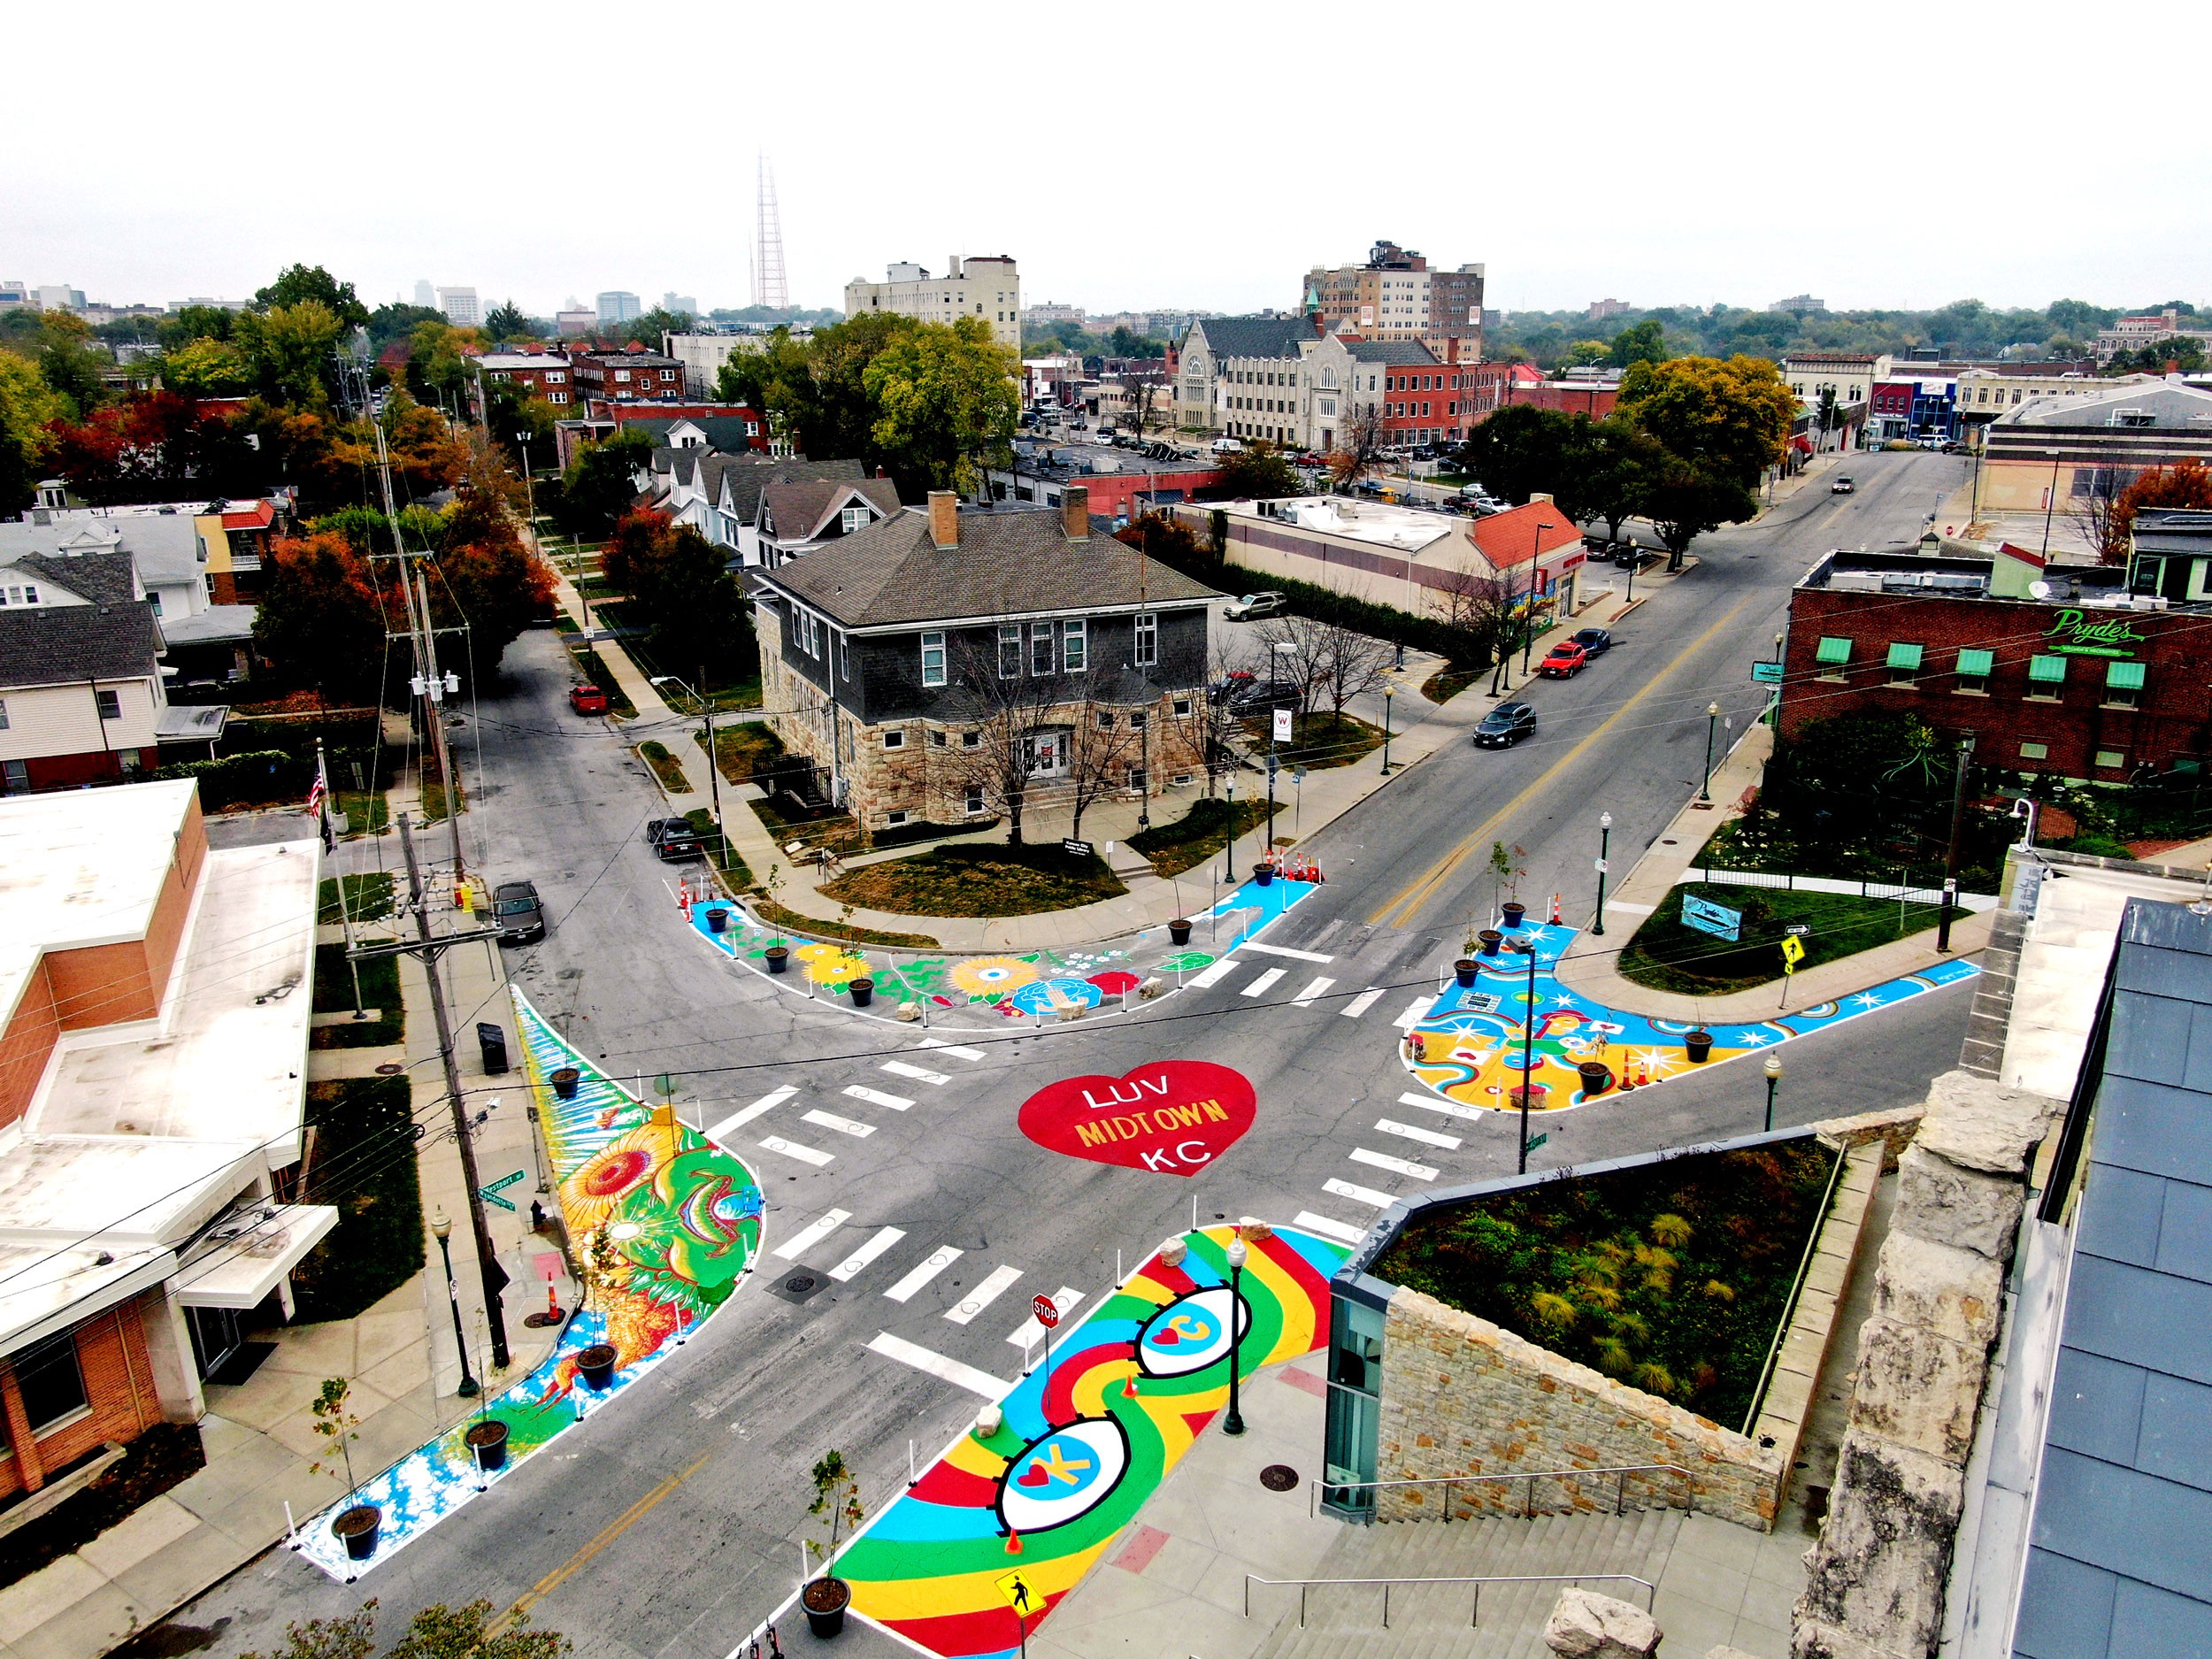 """An intersection is painted in bright colors. Paint narrows crossing distances and widens sidewalks, and a large red heart in the center reads """"LUV MIDTOWN K.C."""""""